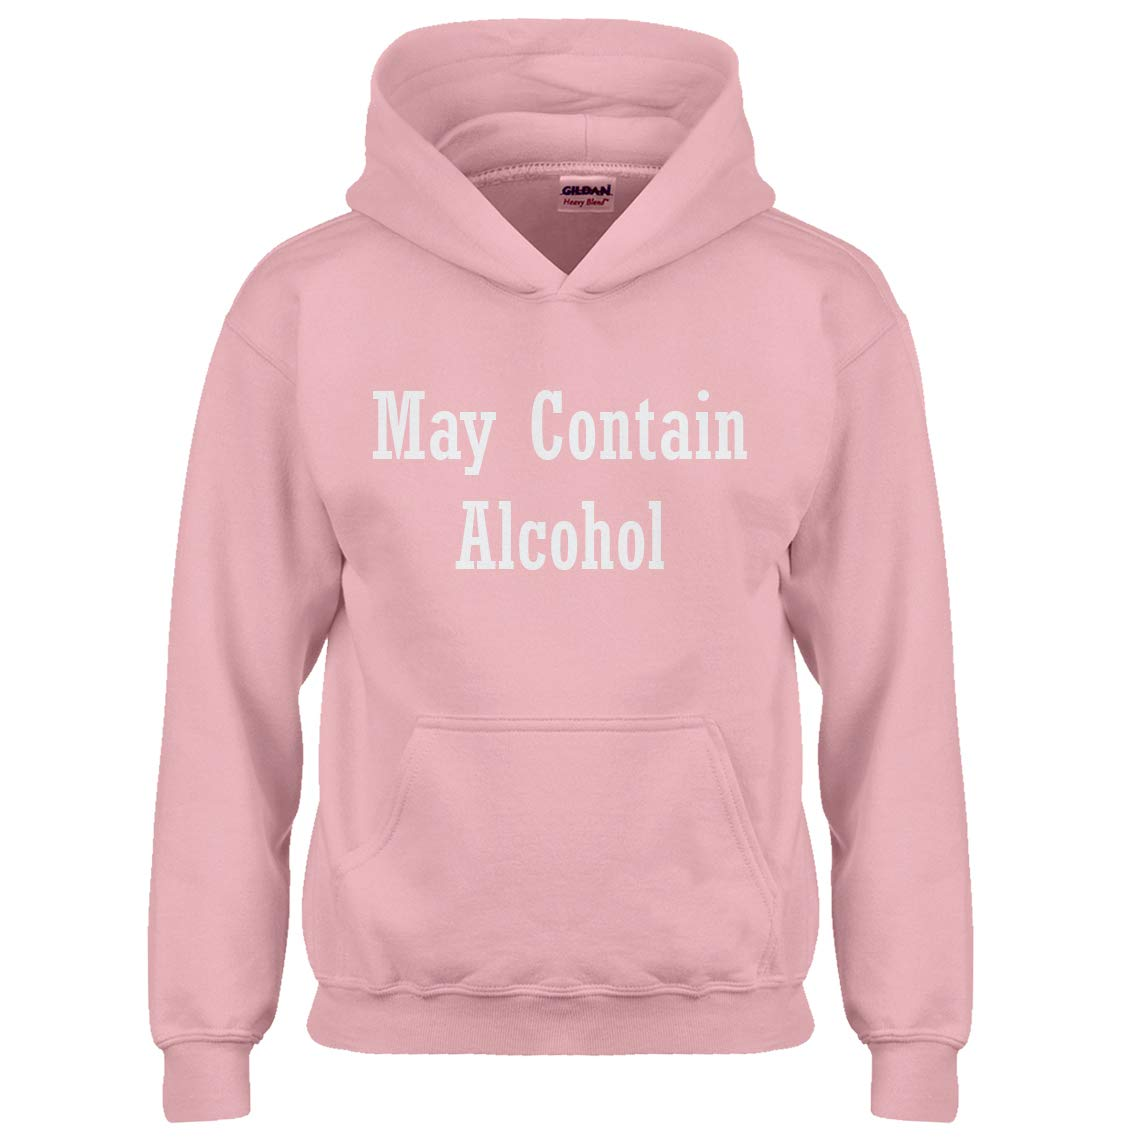 Indica Plateau Youth May Contain Alcohol Kids Hoodie